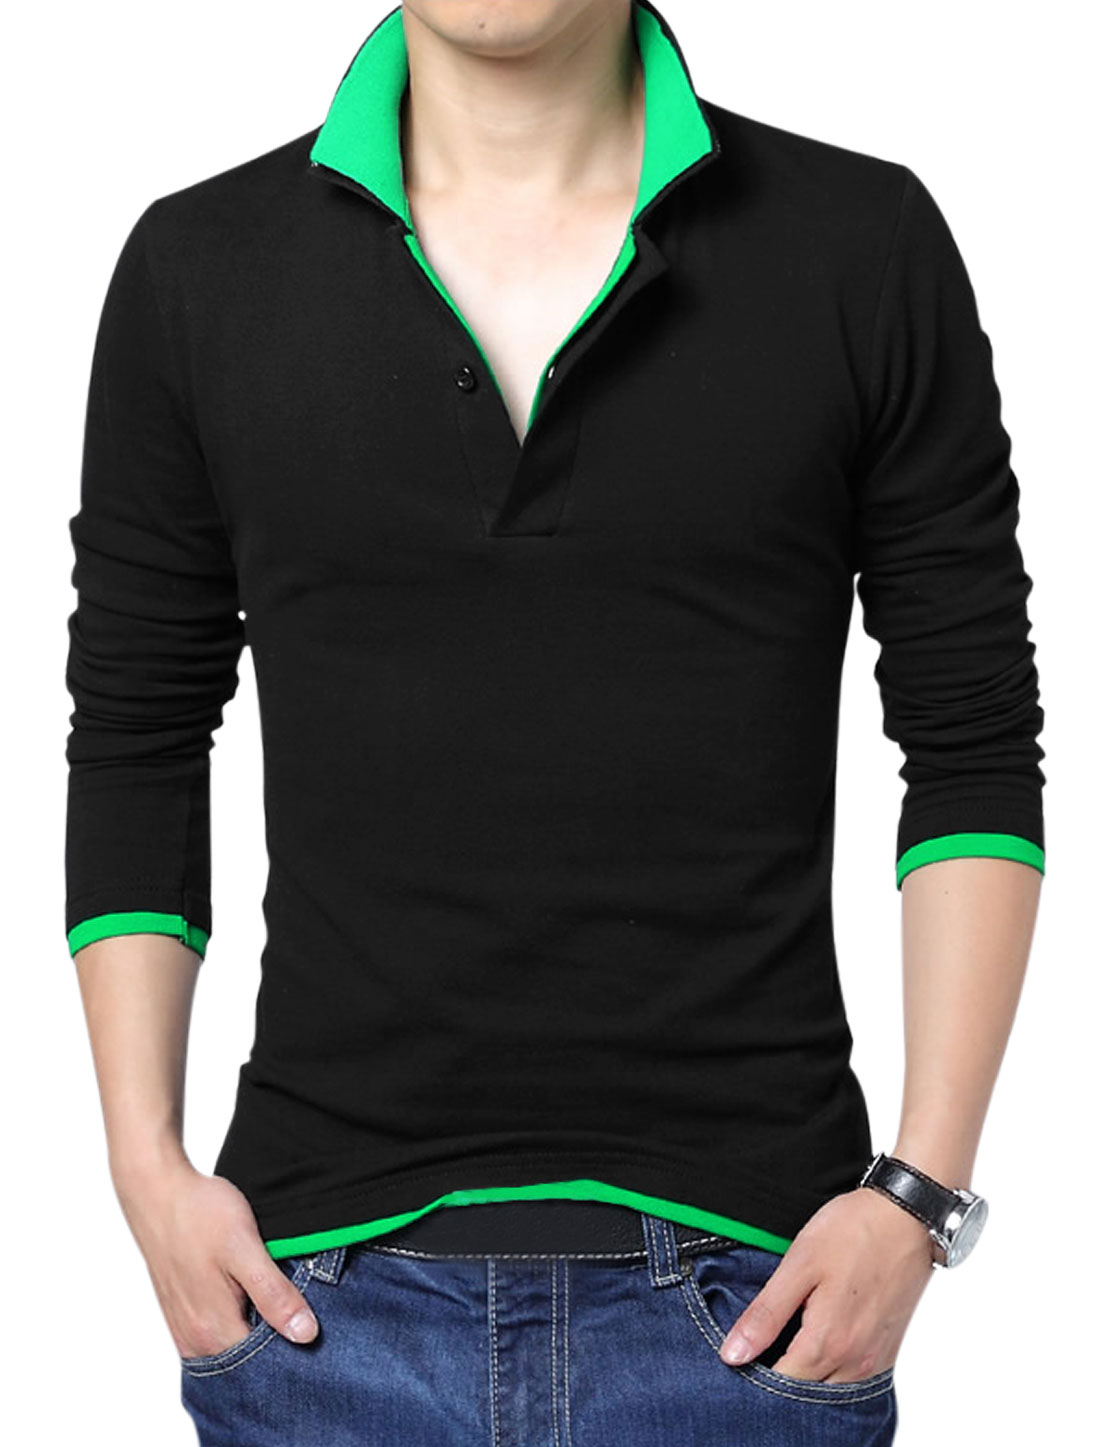 Men Layered Point Collar Long Sleeve Fashion Design Polo Shirt Black Green L